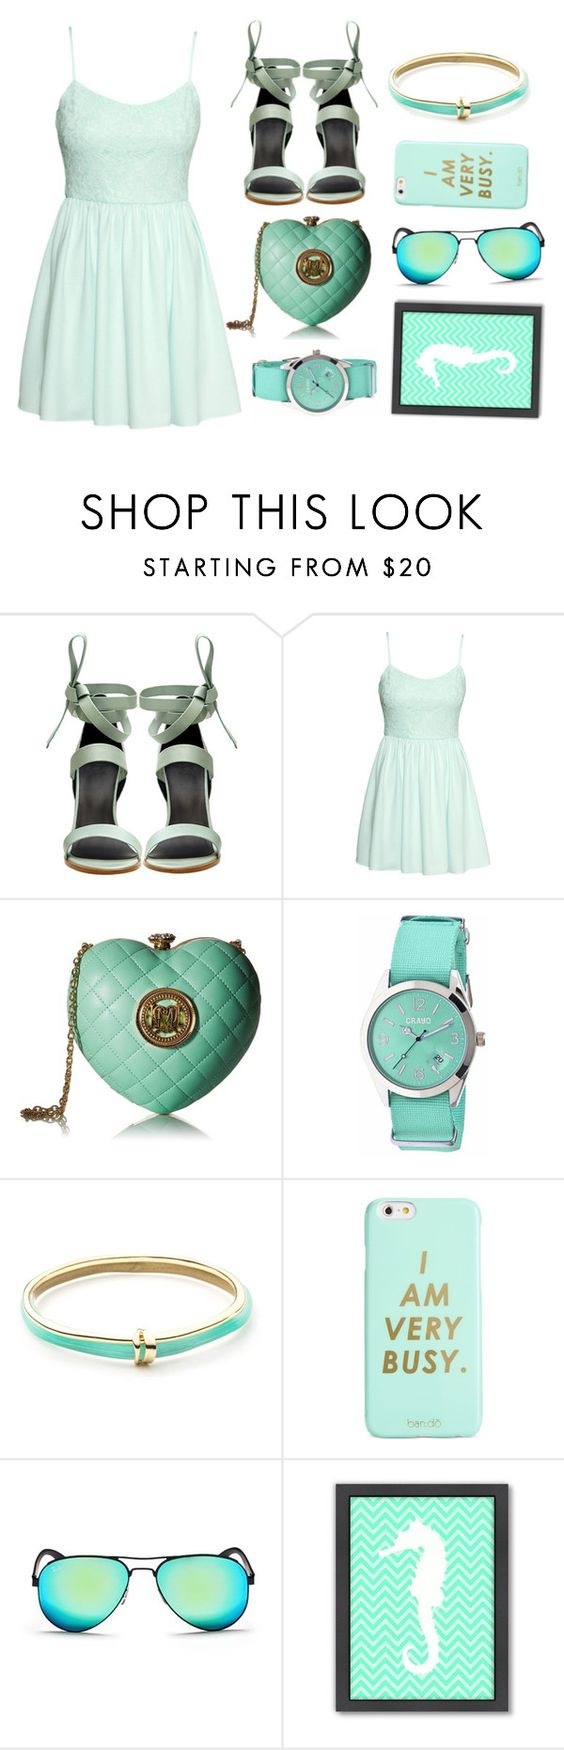 """""""look around"""" by lialicious on Polyvore featuring TIBI, H&M, Love Moschino, Crayo, Alexis Bittar, ban.do, Ray-Ban, Americanflat, contestentry and laceupsandals"""